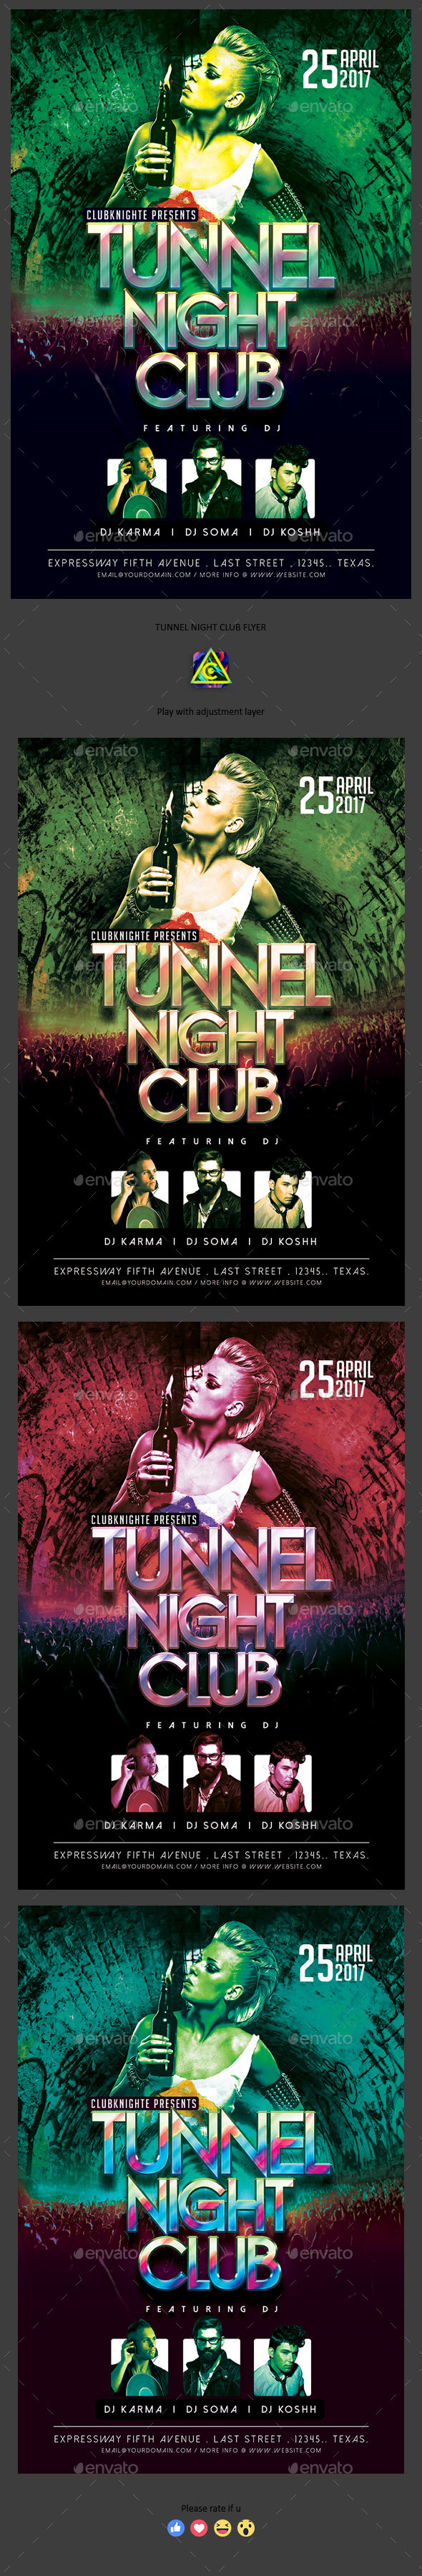 Tunnel Night Club Flyer - Clubs & Parties Events